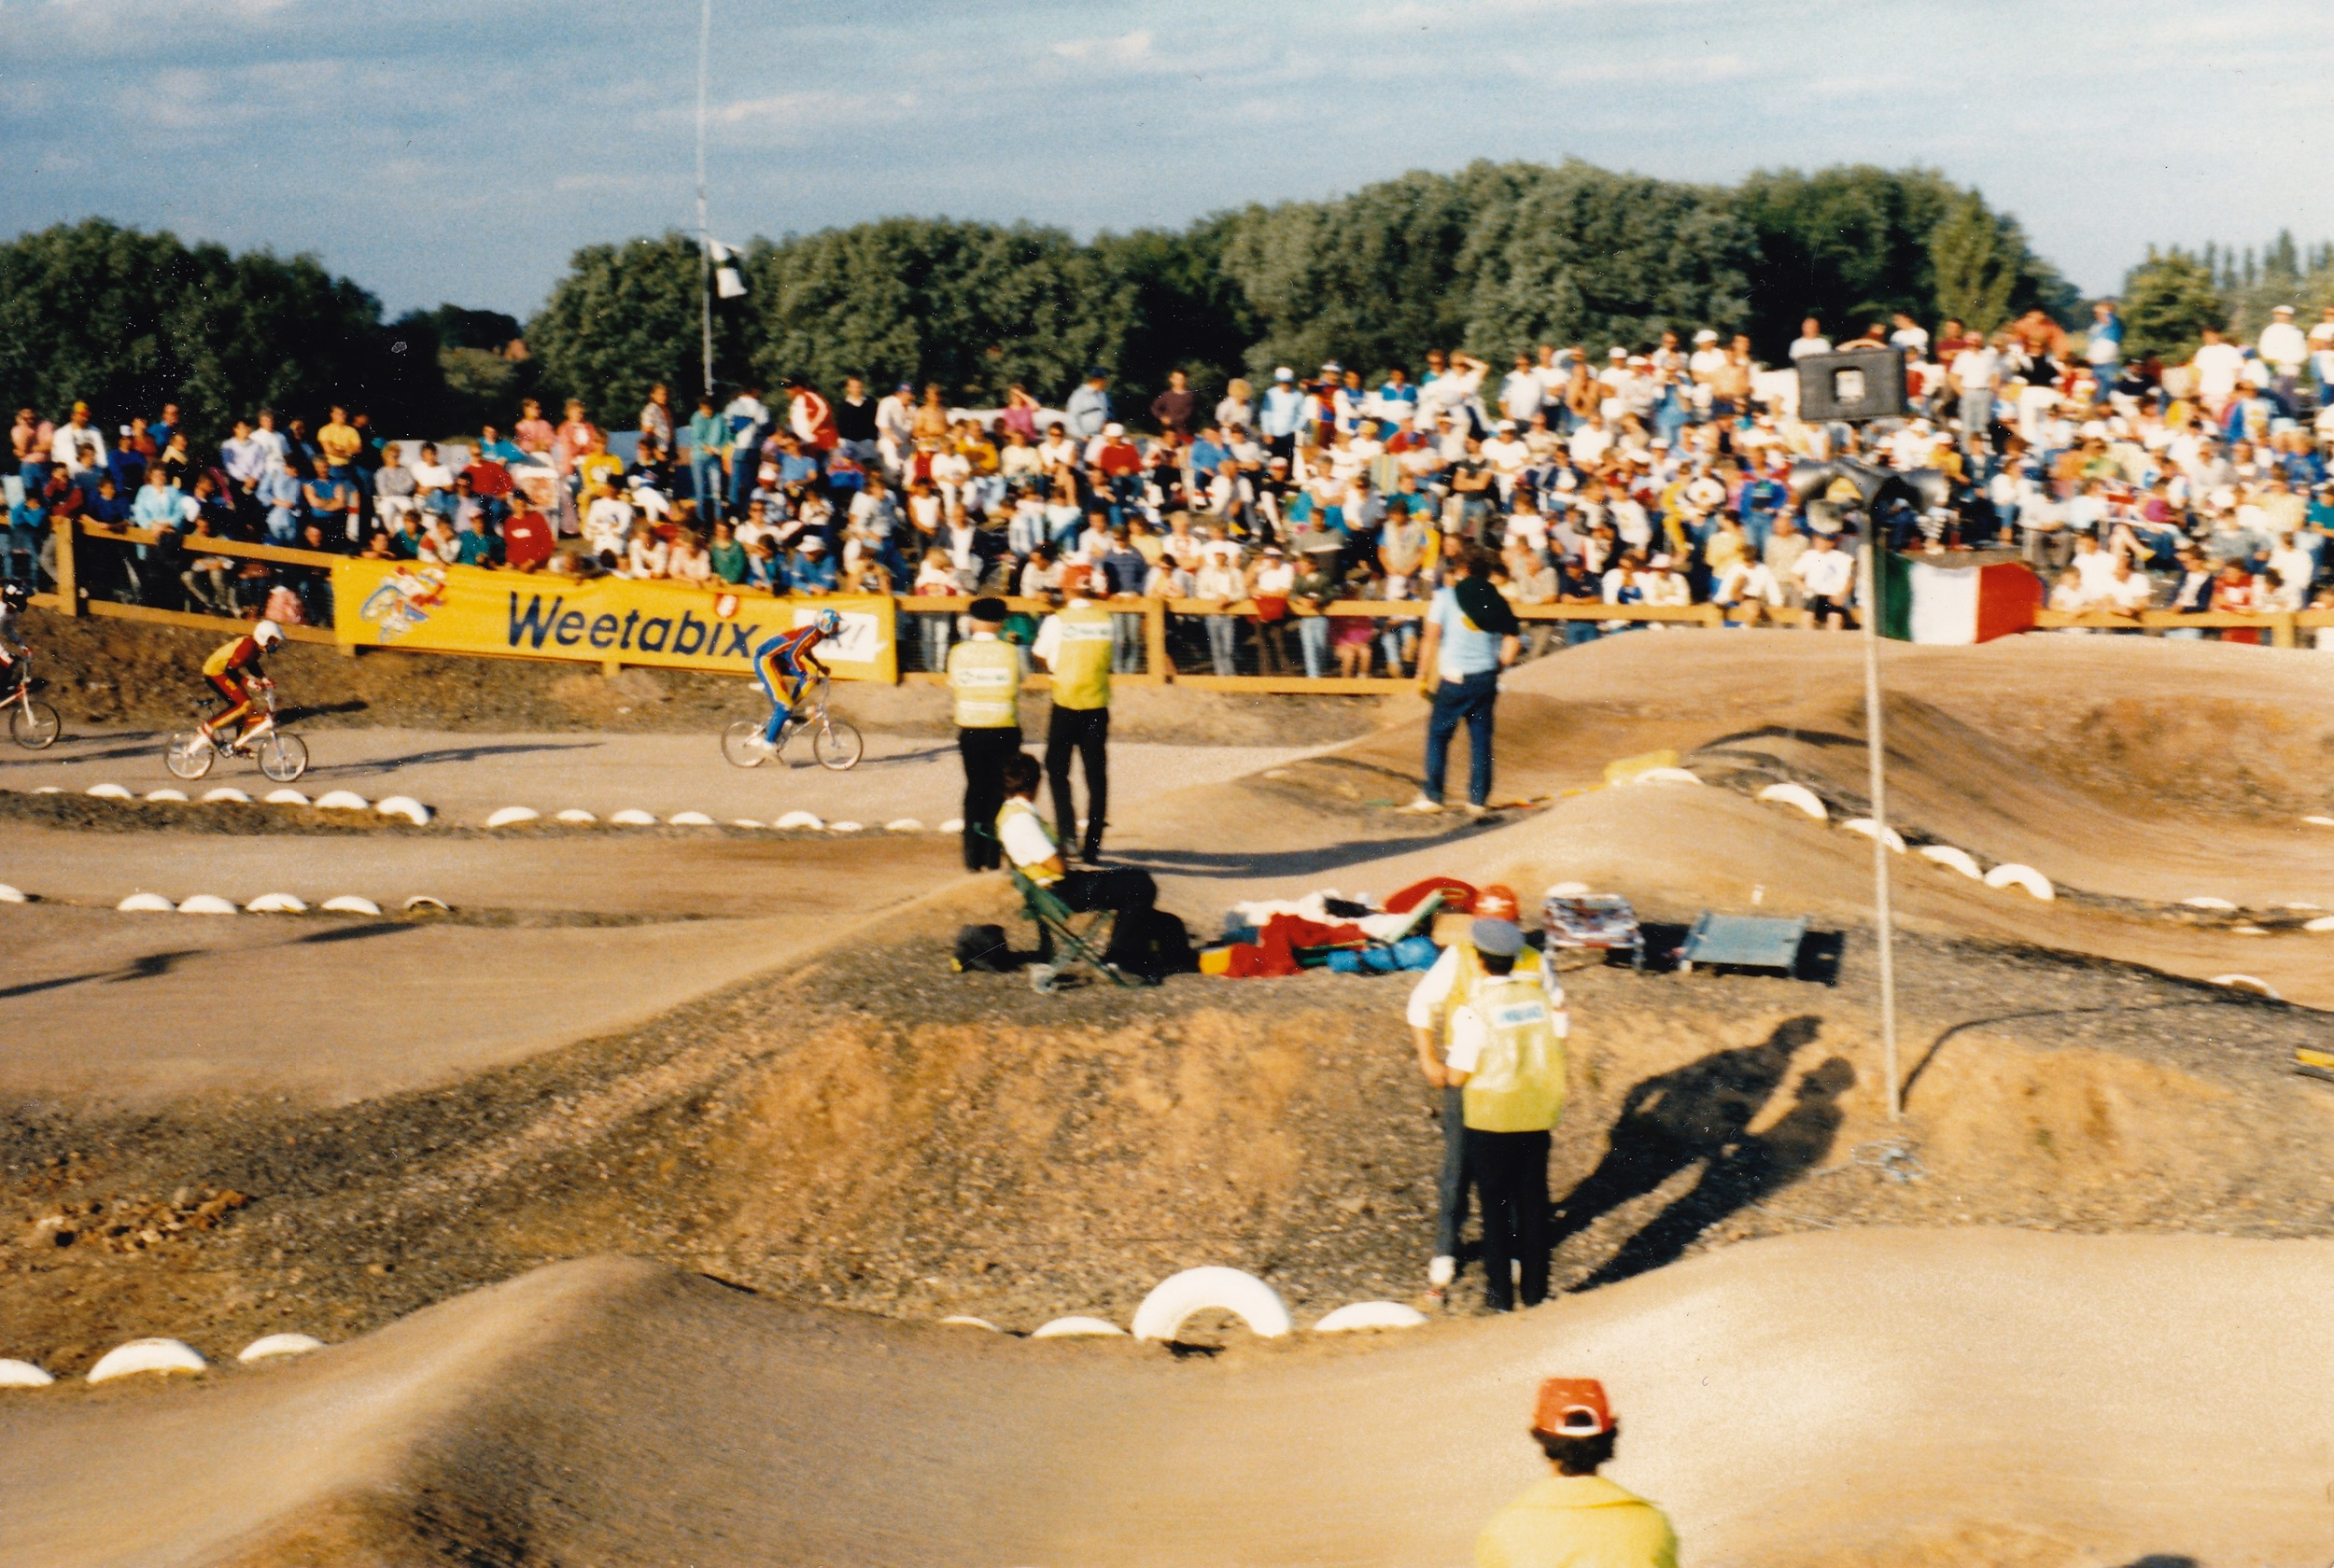 Crowds watching the racing at the Slough World Champs in 1986